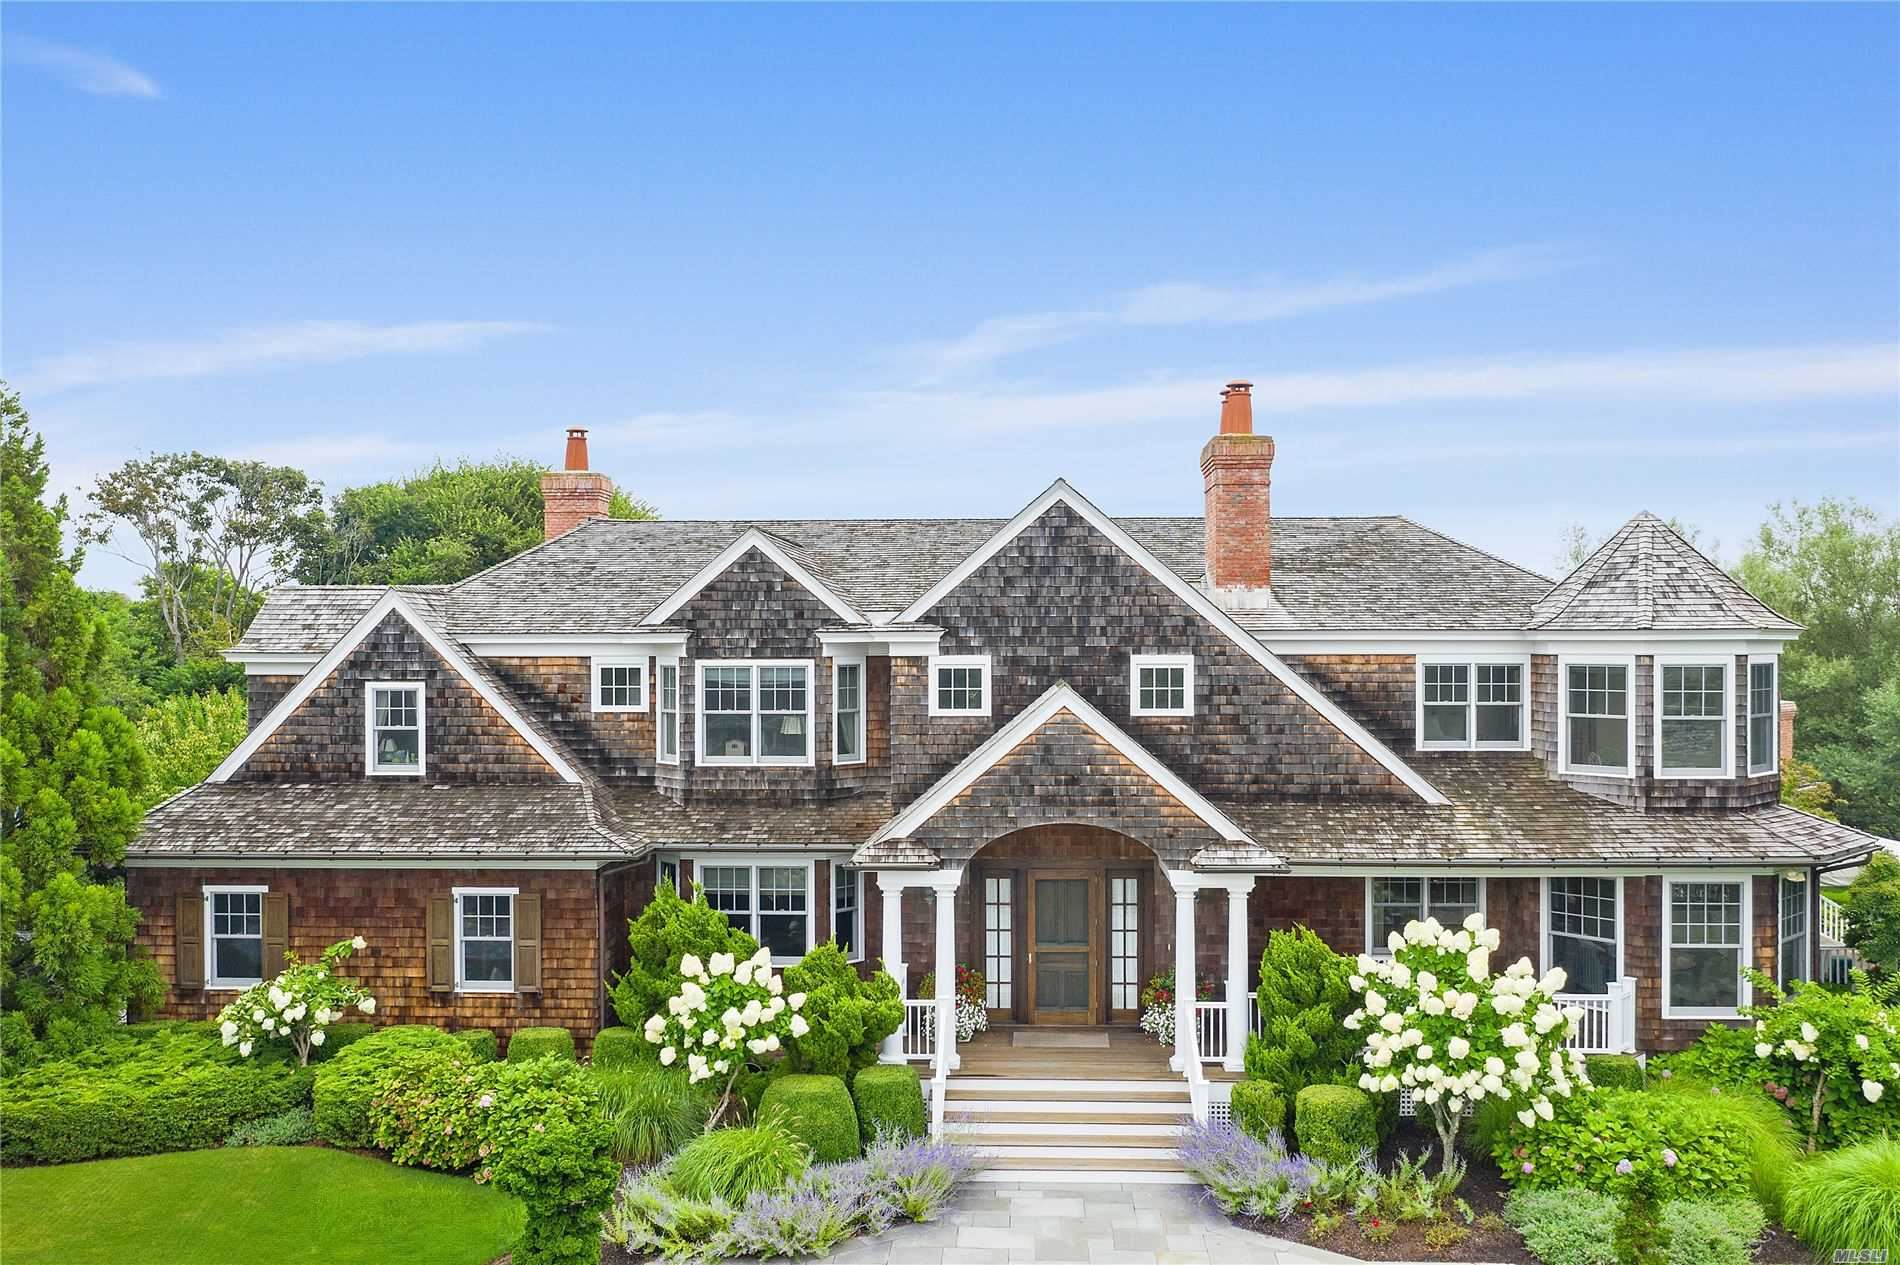 8 Leaward Ln, Quogue, NY 11959 - MLS#: 3211543